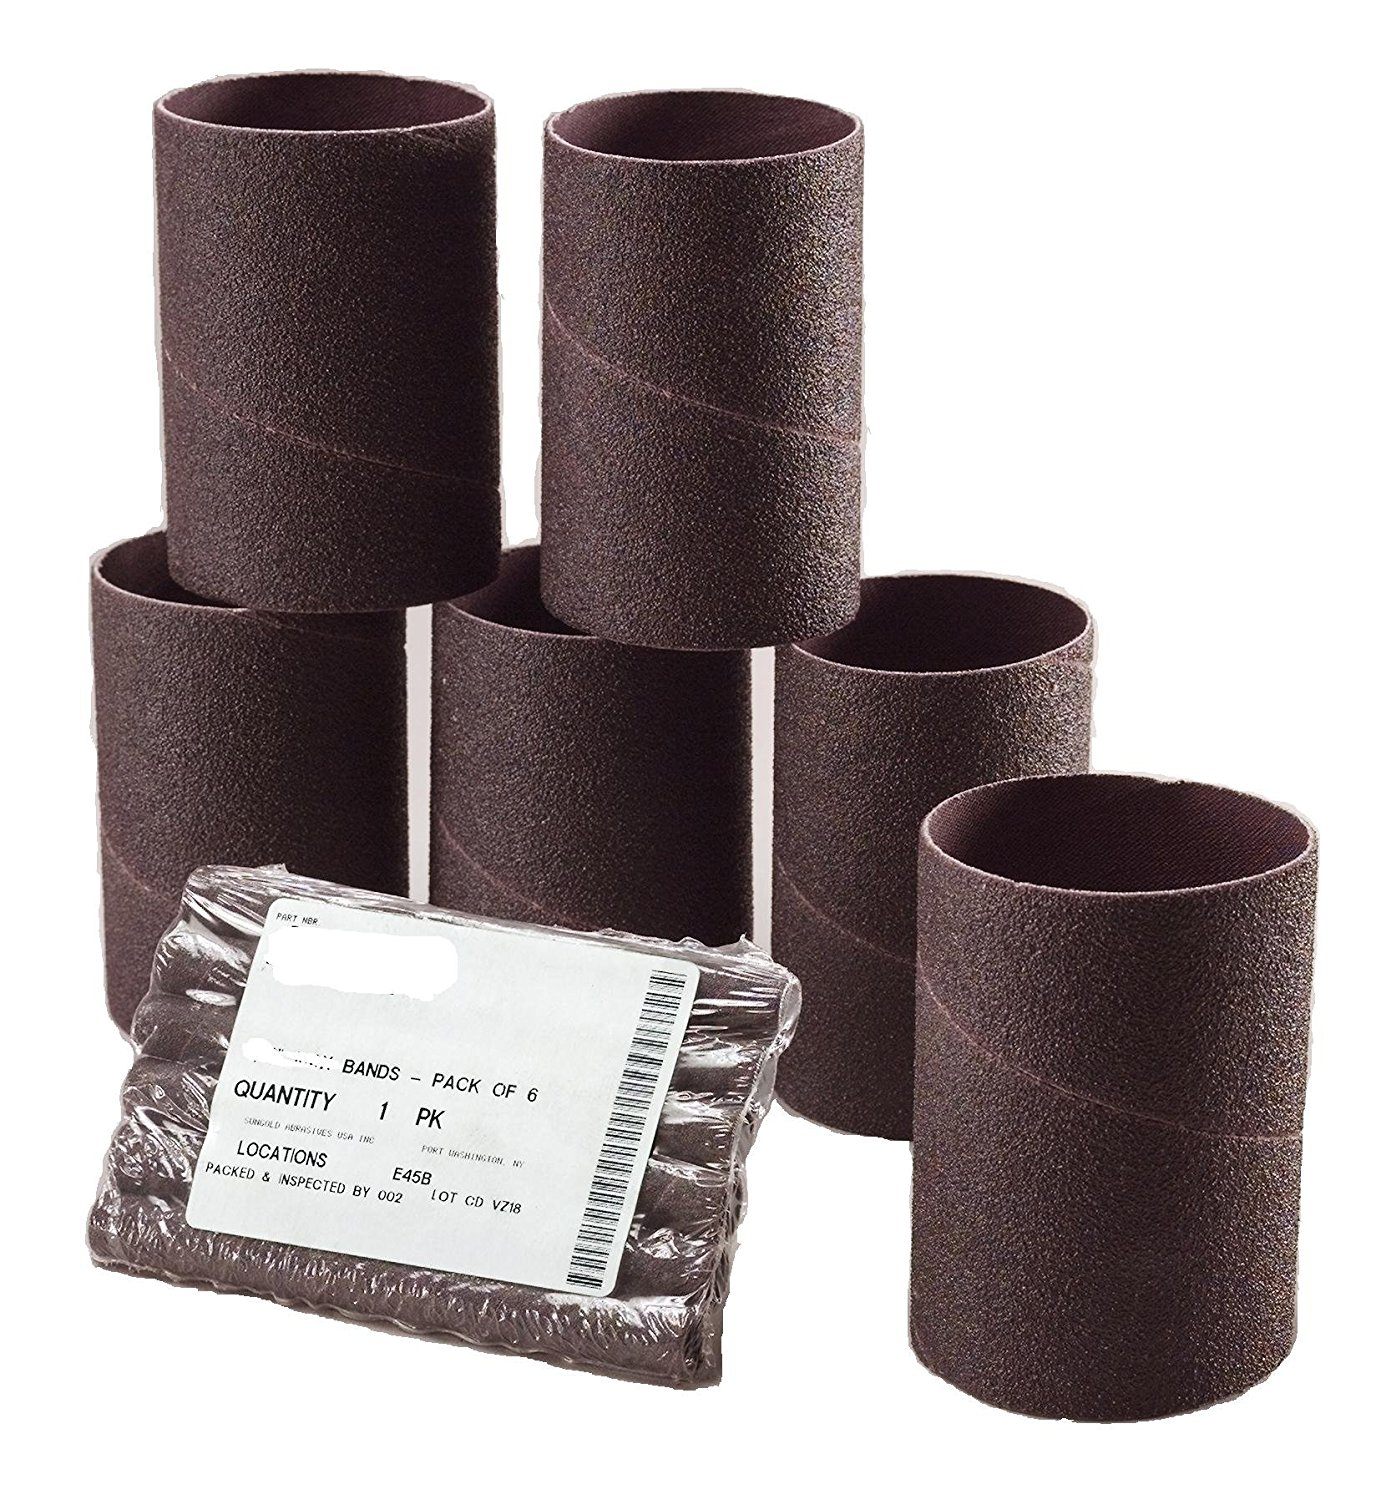 Sungold Abrasives 454078 Spiral Bands Sanding Sleeves 2-Inch by 5-5/8-Inch 100 Grit Alumium Oxide Cloth, 6-Pack